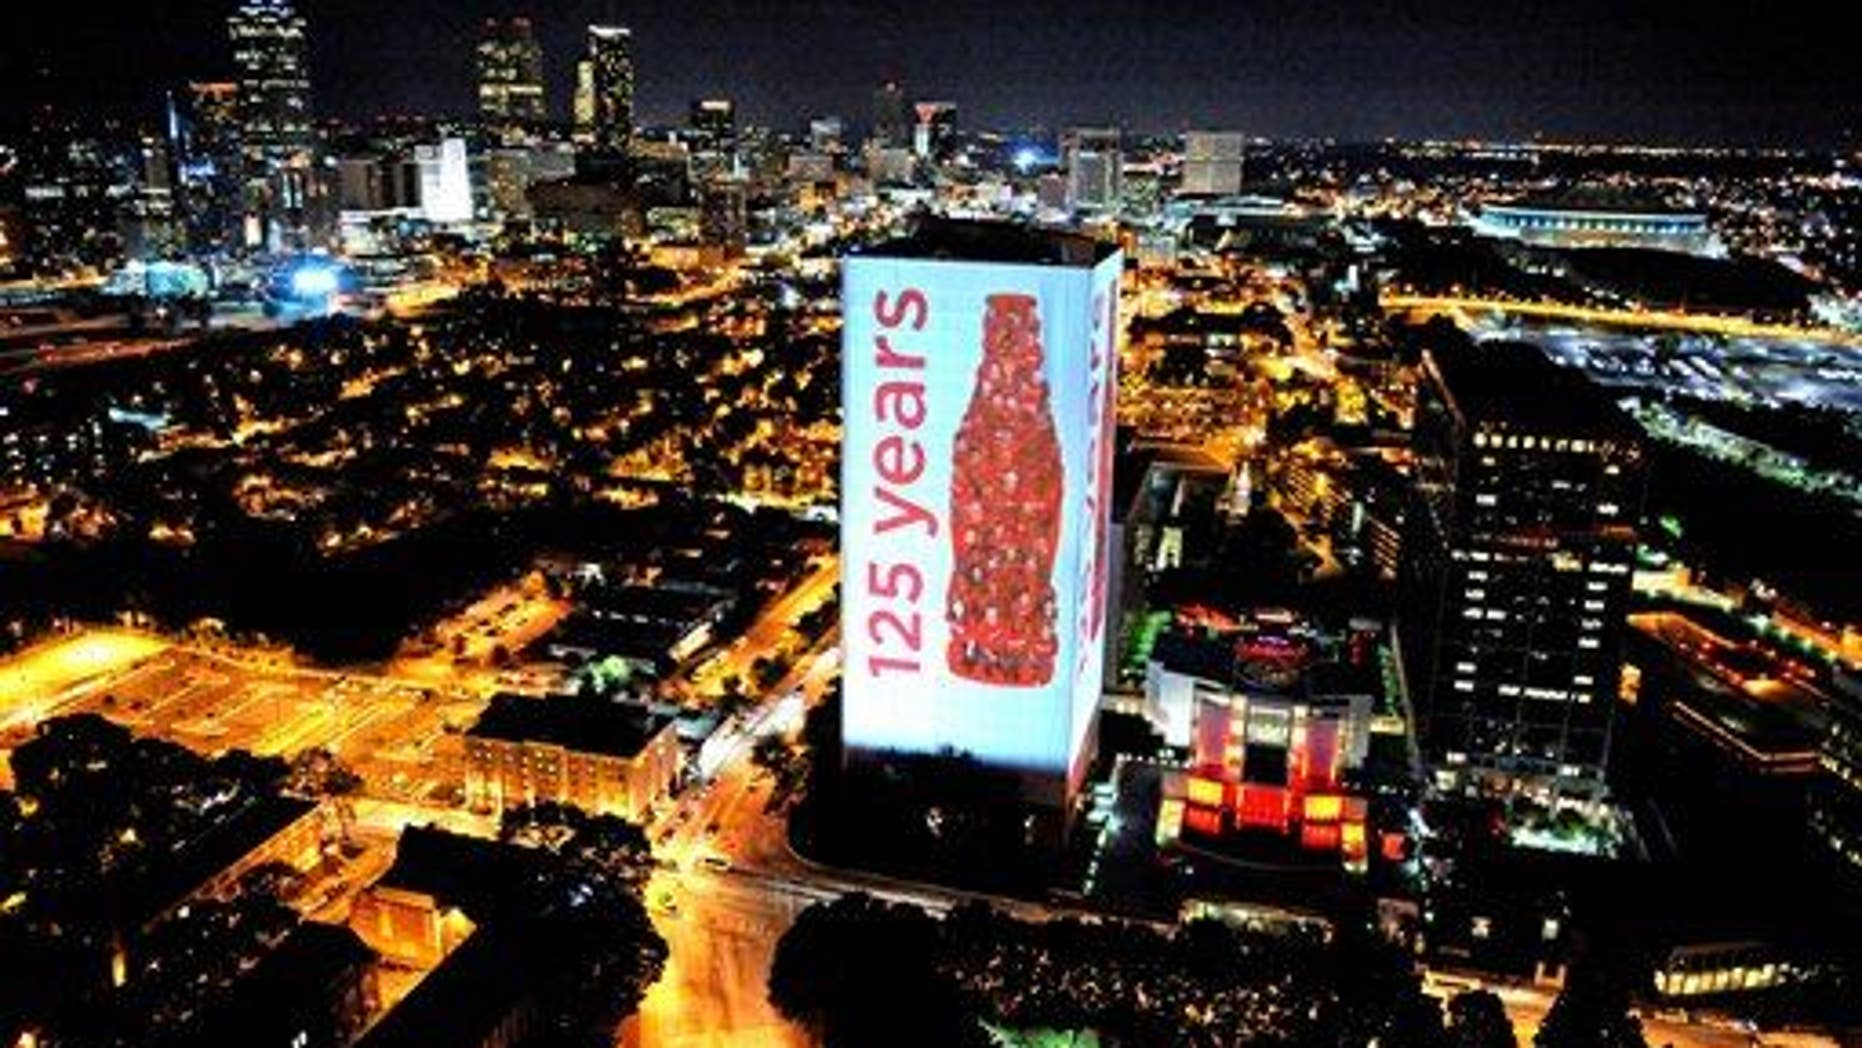 The headquarters building of The Coca-Cola Company is illuminated against the skyline of Atlanta.